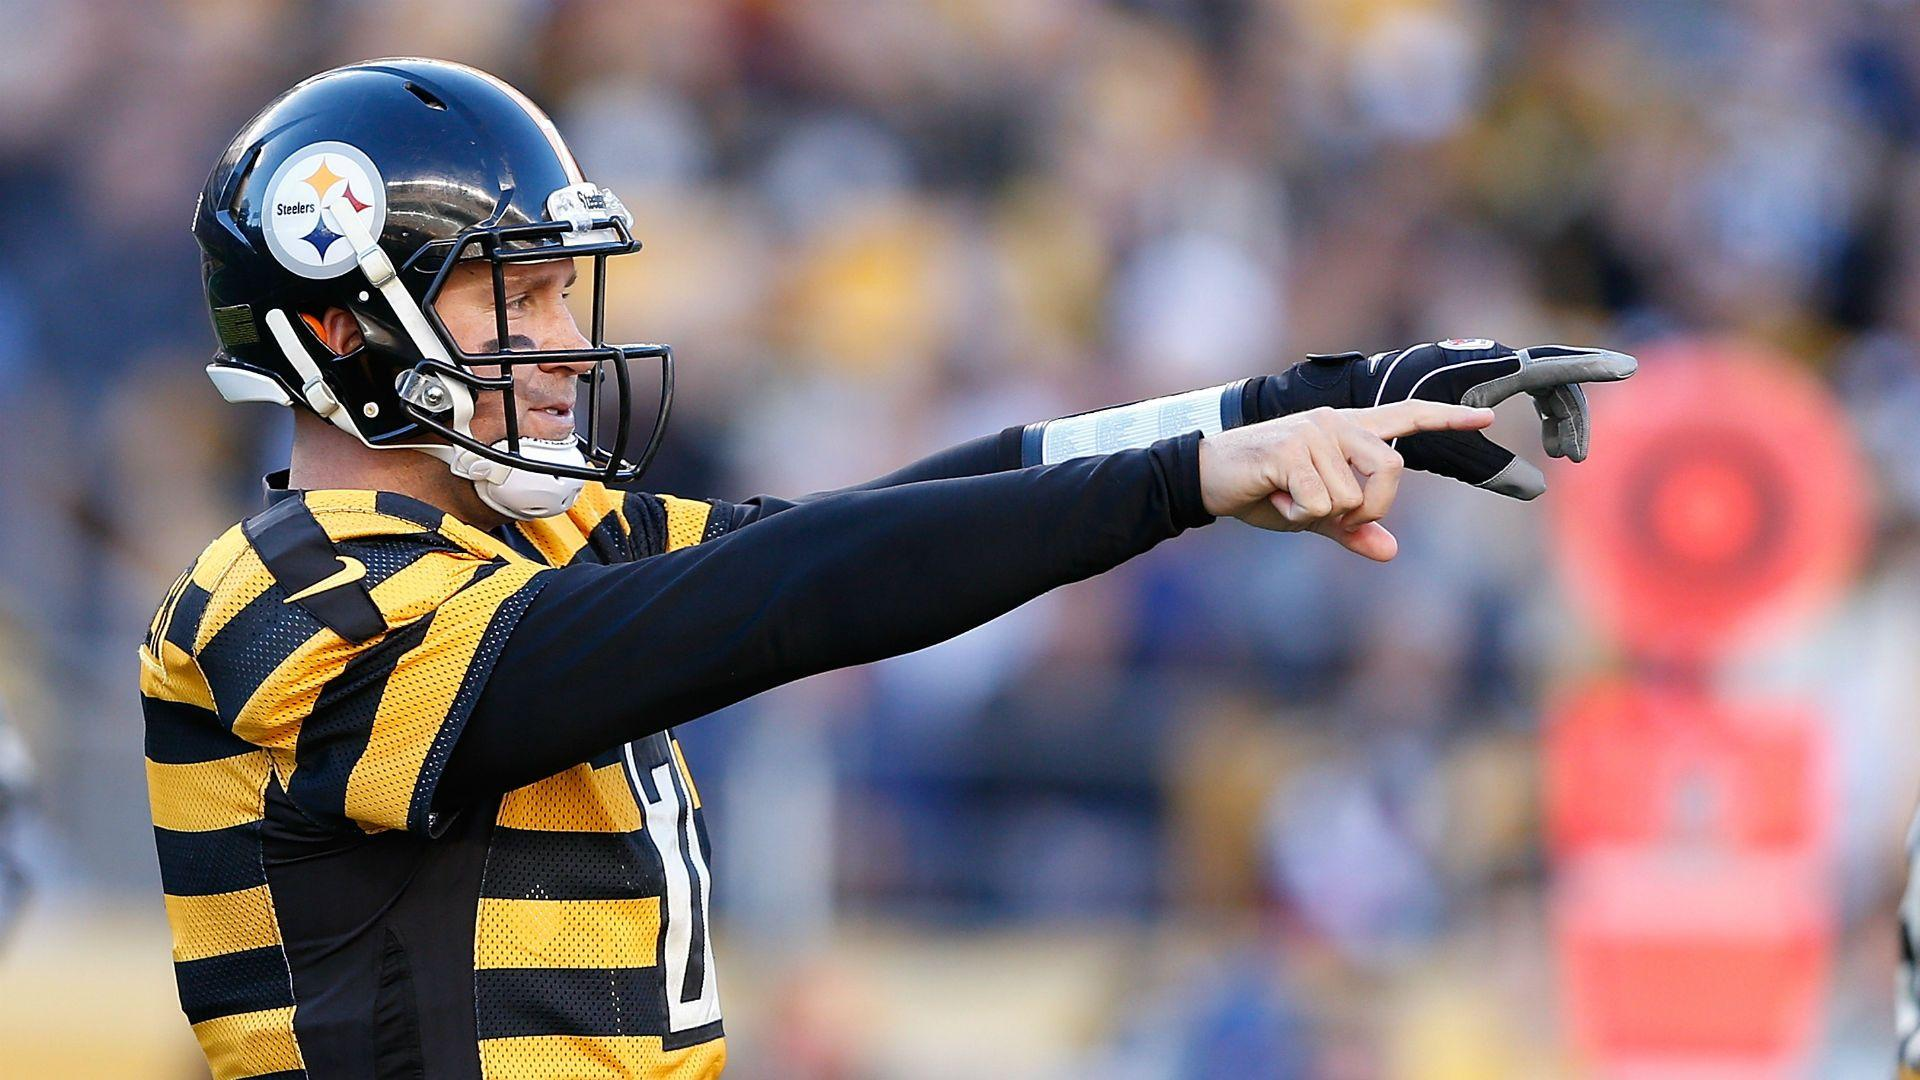 Ben Roethlisberger gets punt blocked by Colts